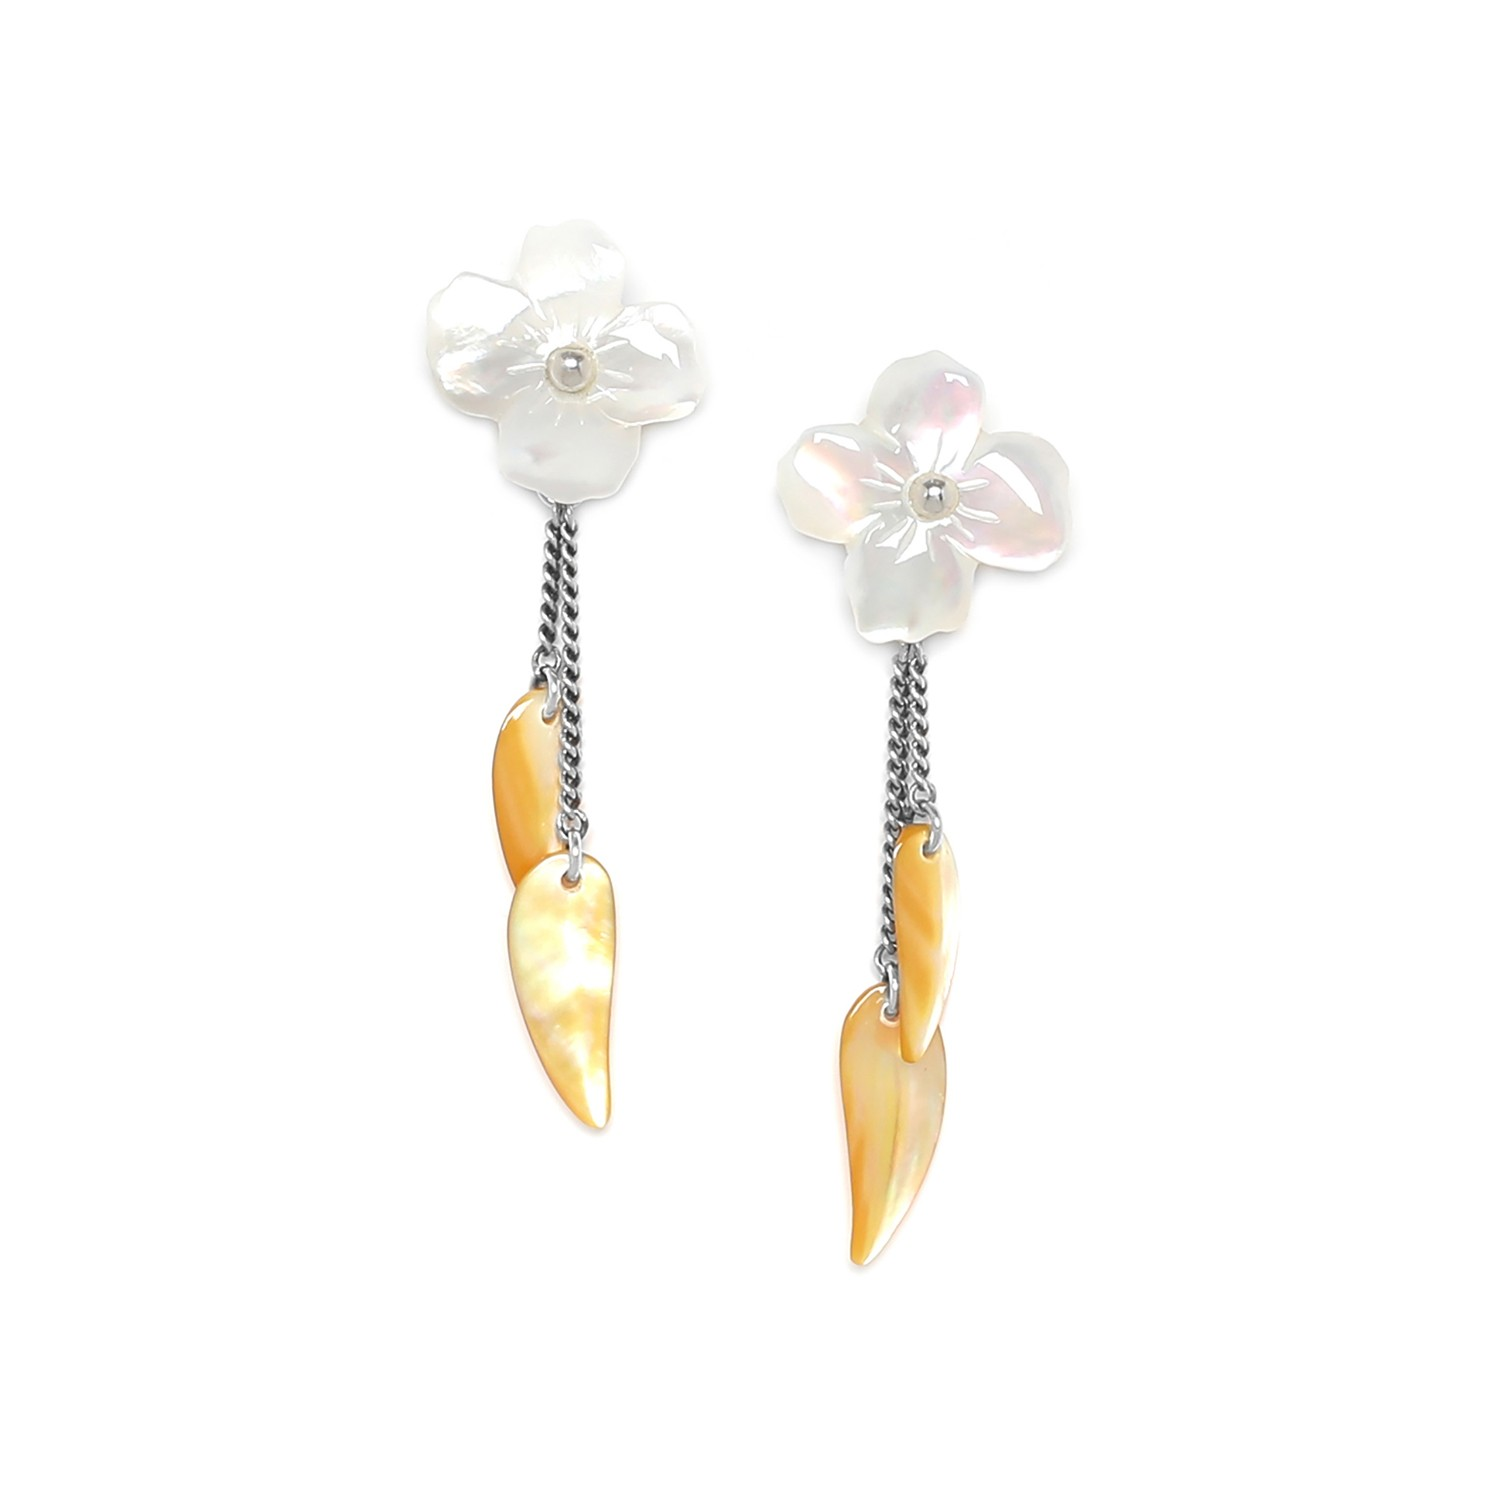 FLEURS DE NACRE white MoP earrings w/dangles